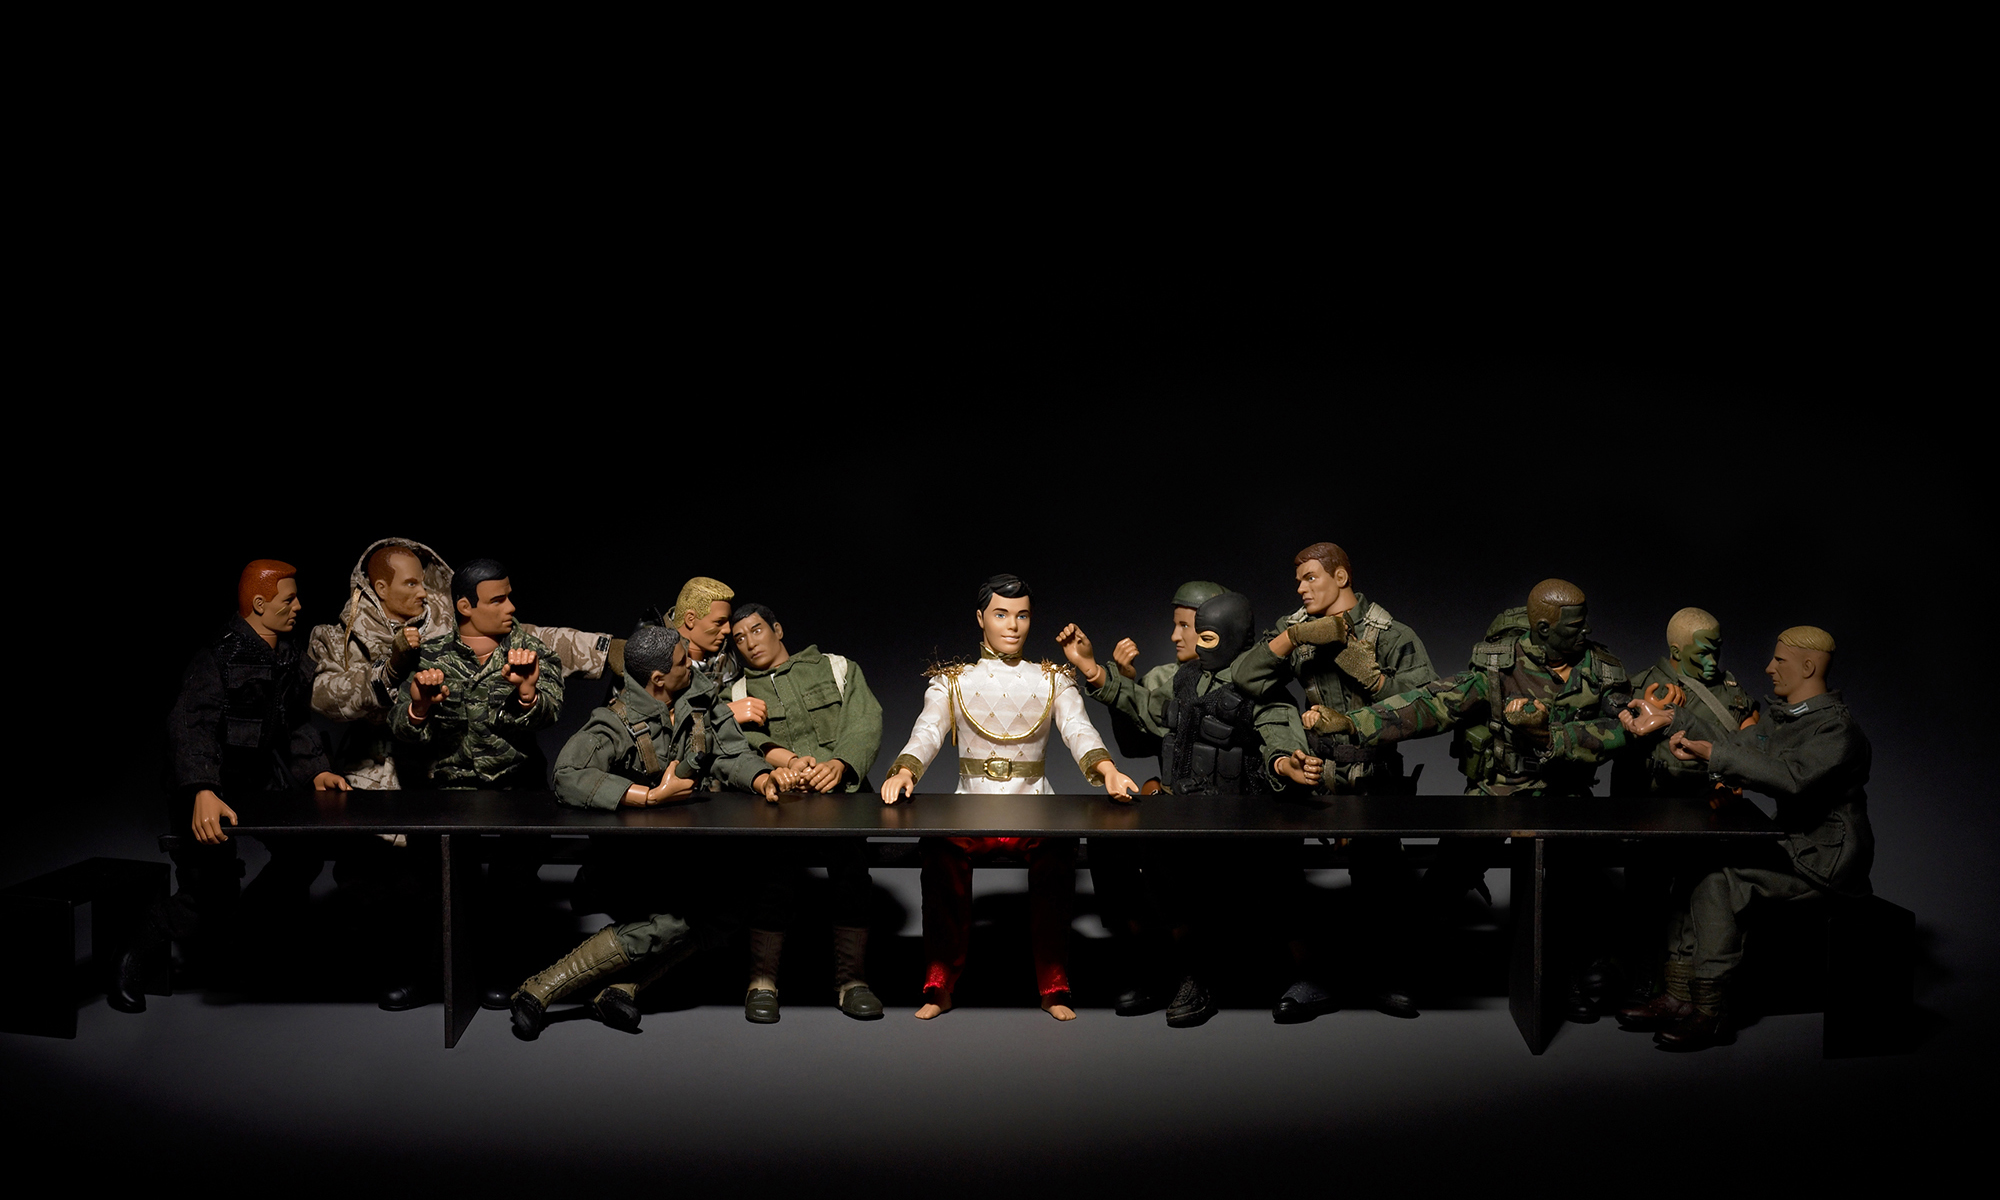 16-GuerradelaPaz_Last-Supper_2005